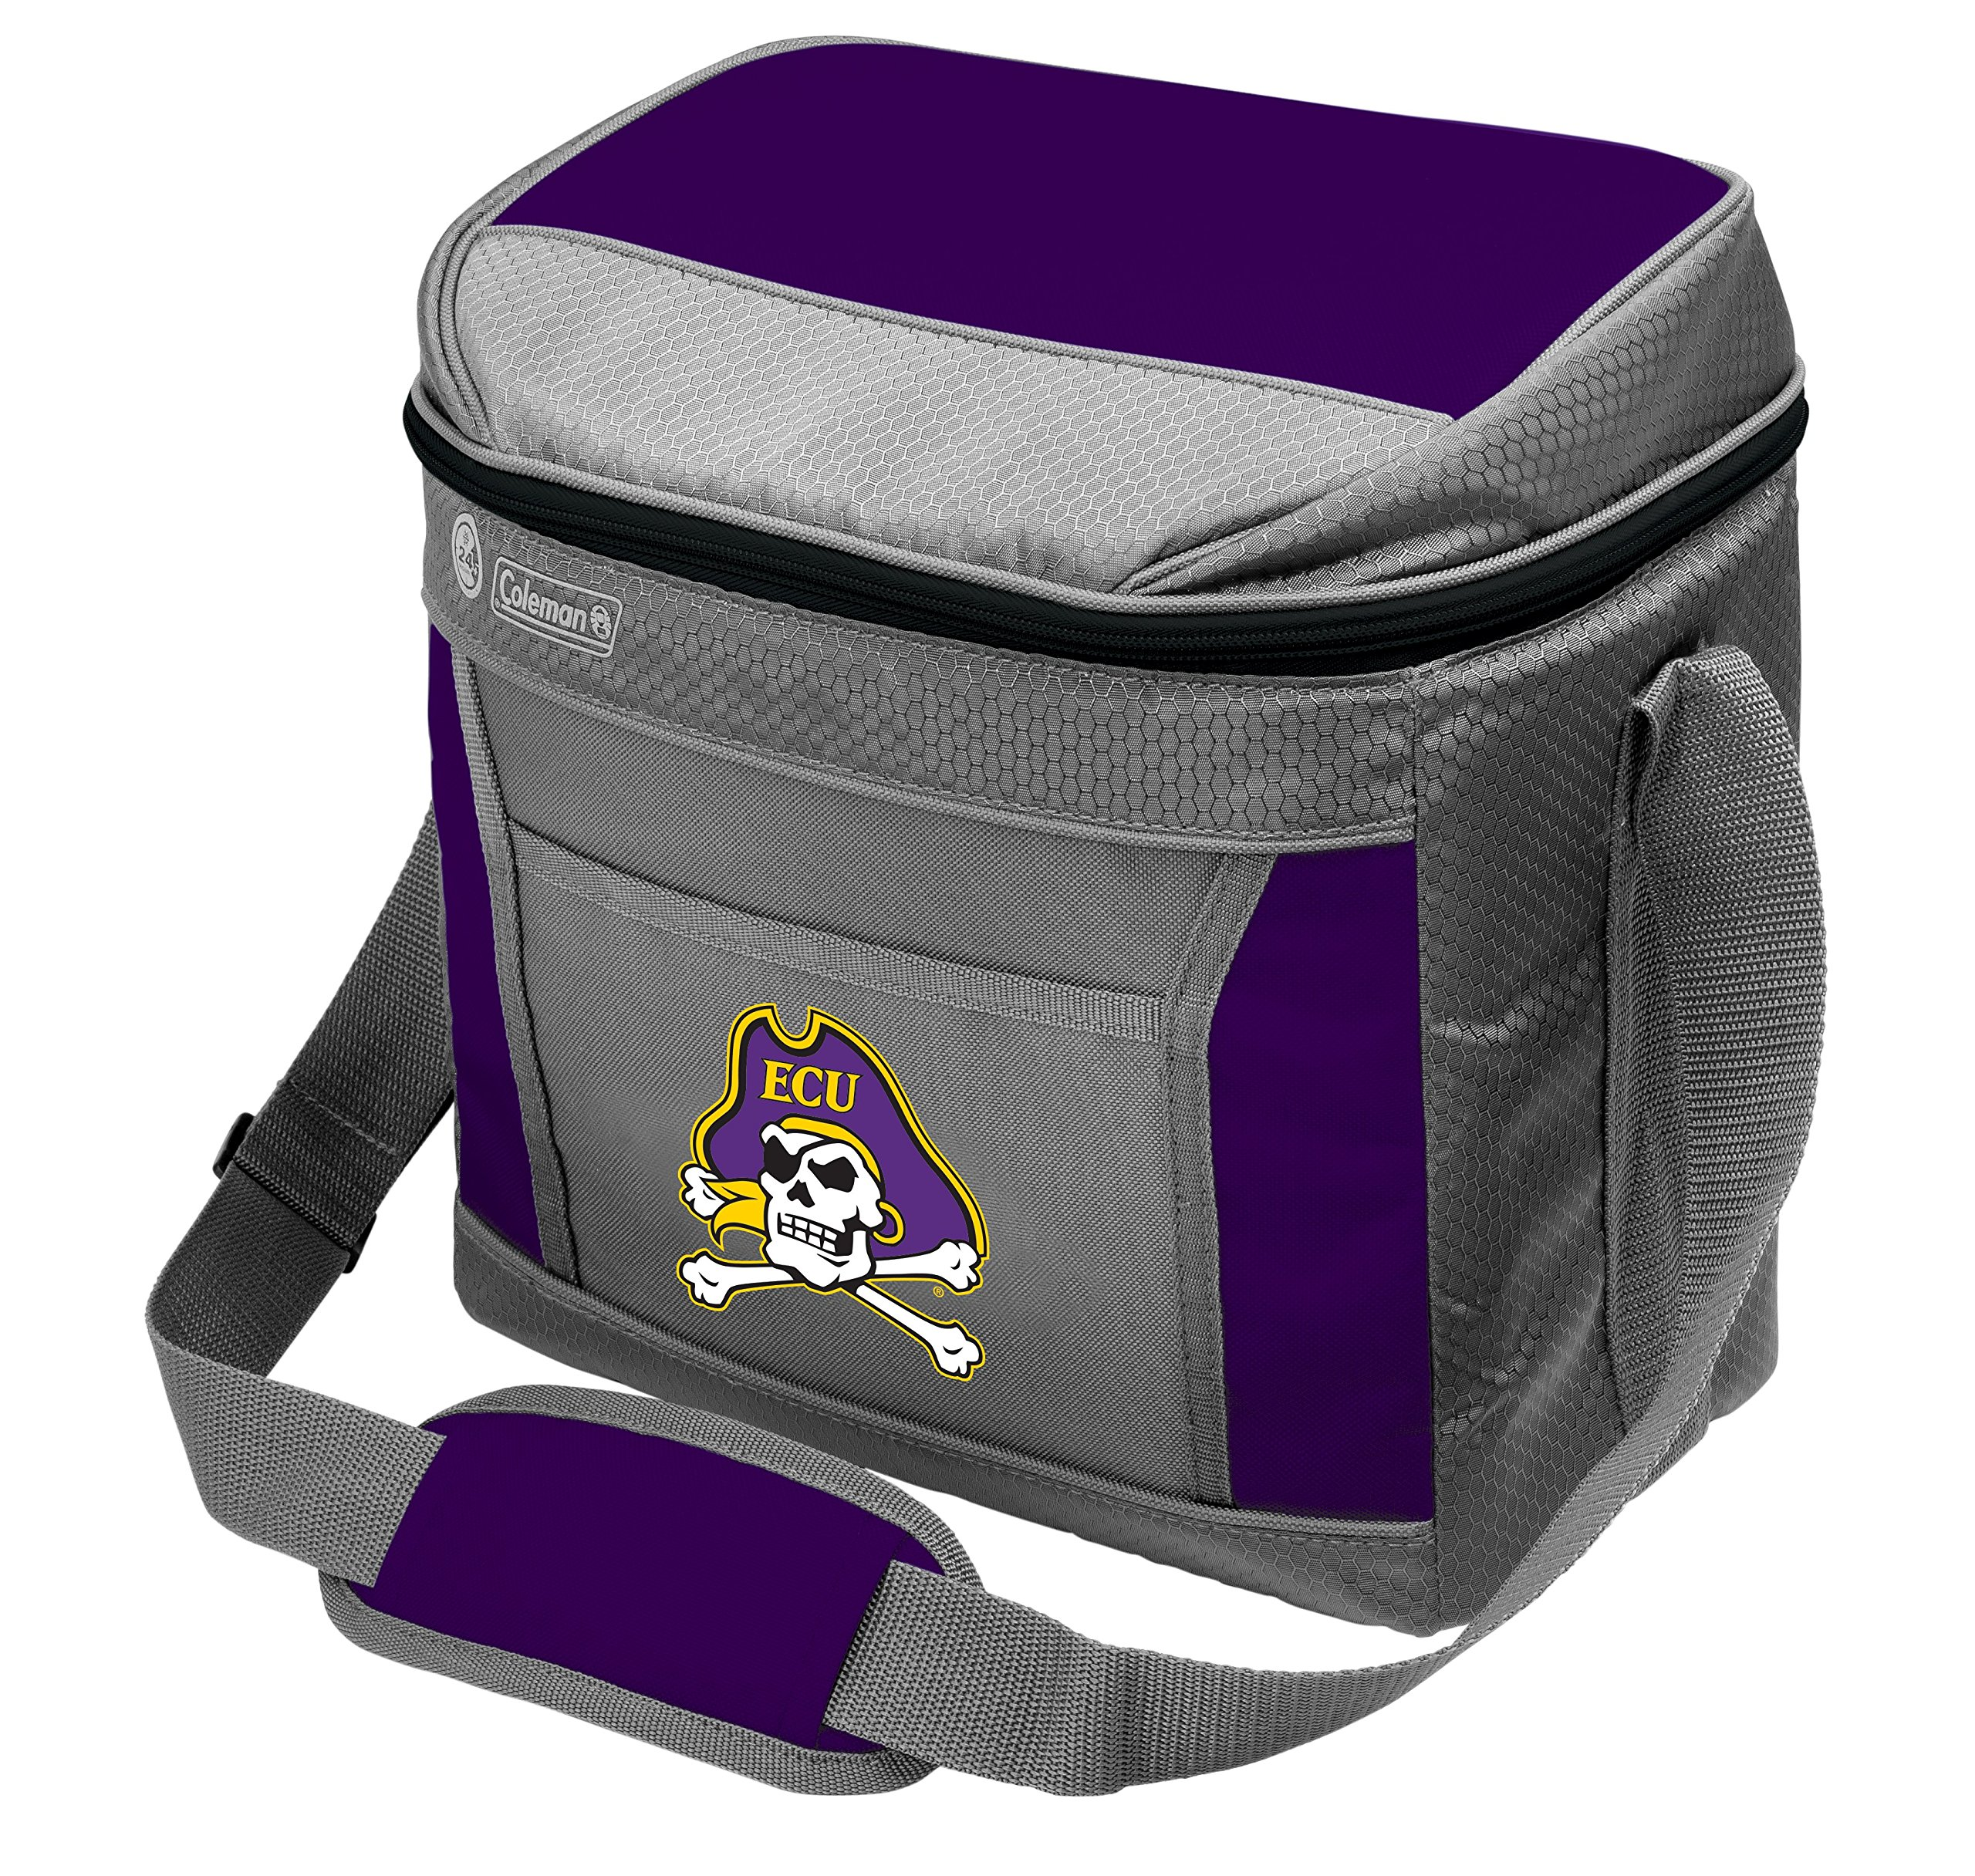 Coleman NCAA Soft-Sided Insulated Cooler Bag, 16-Can Capacity, East Carolina University